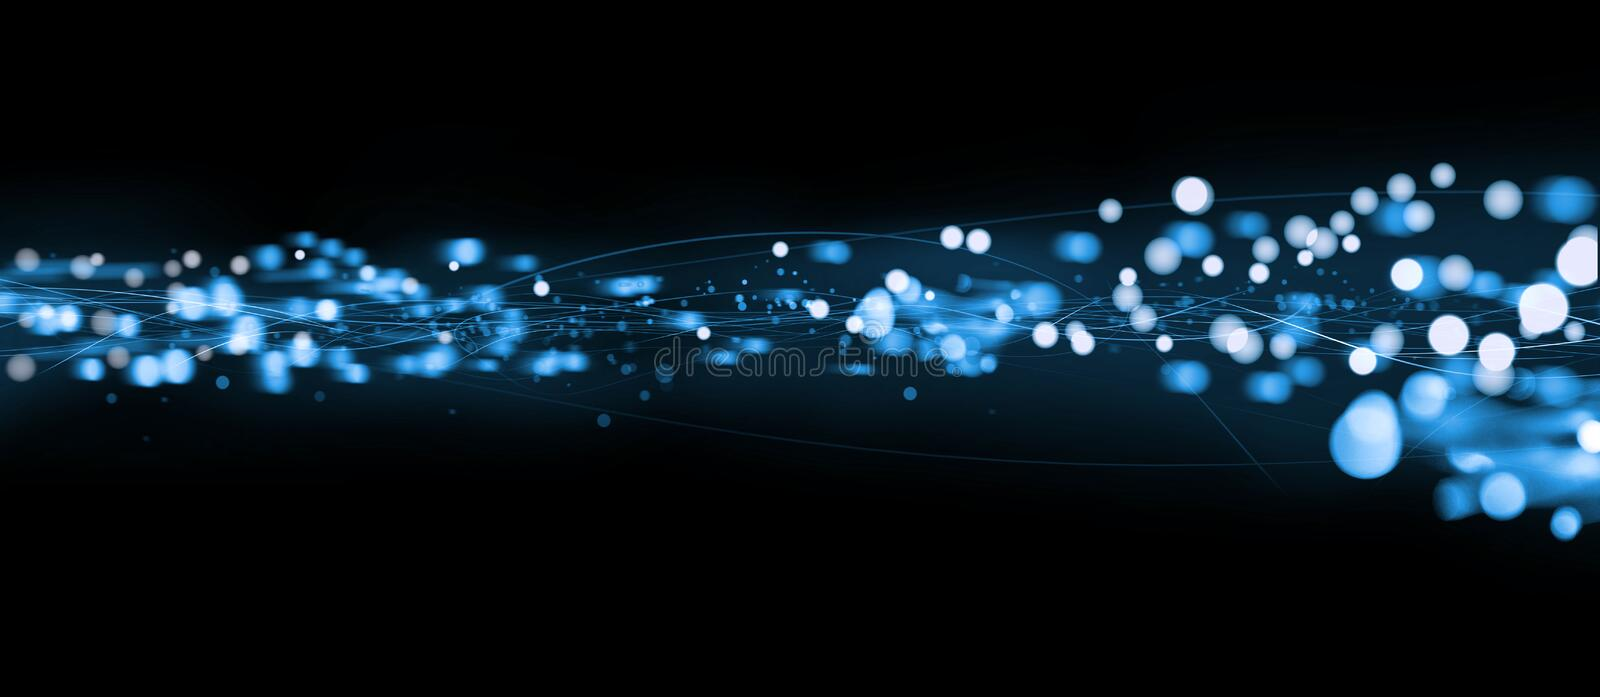 Blue banner artwork. A blue background of dancing lights and tapes. Suitable for web banner